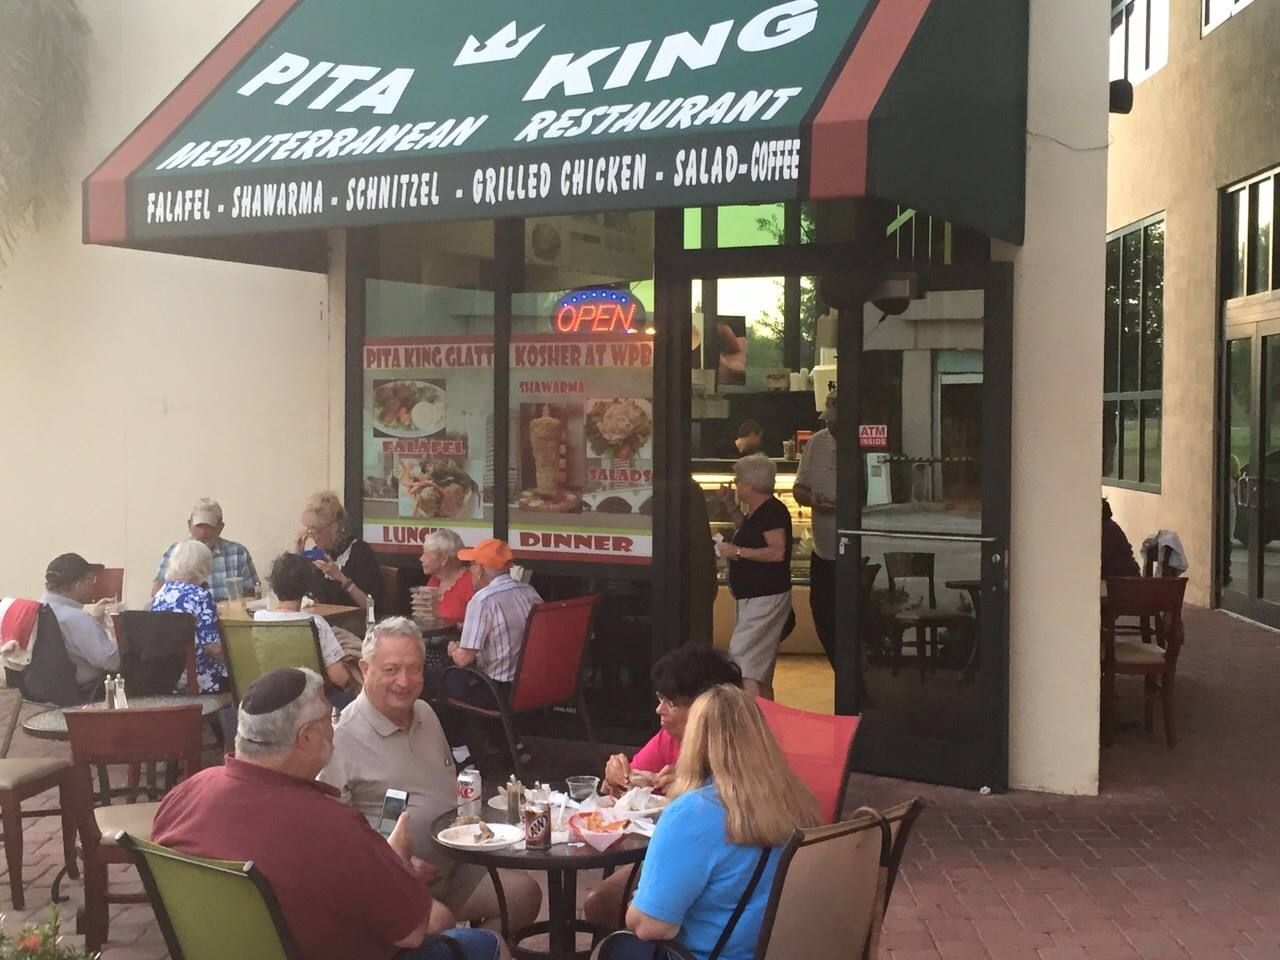 Reinstated Pita King In West Palm Beach Fl Loses Hashgacha